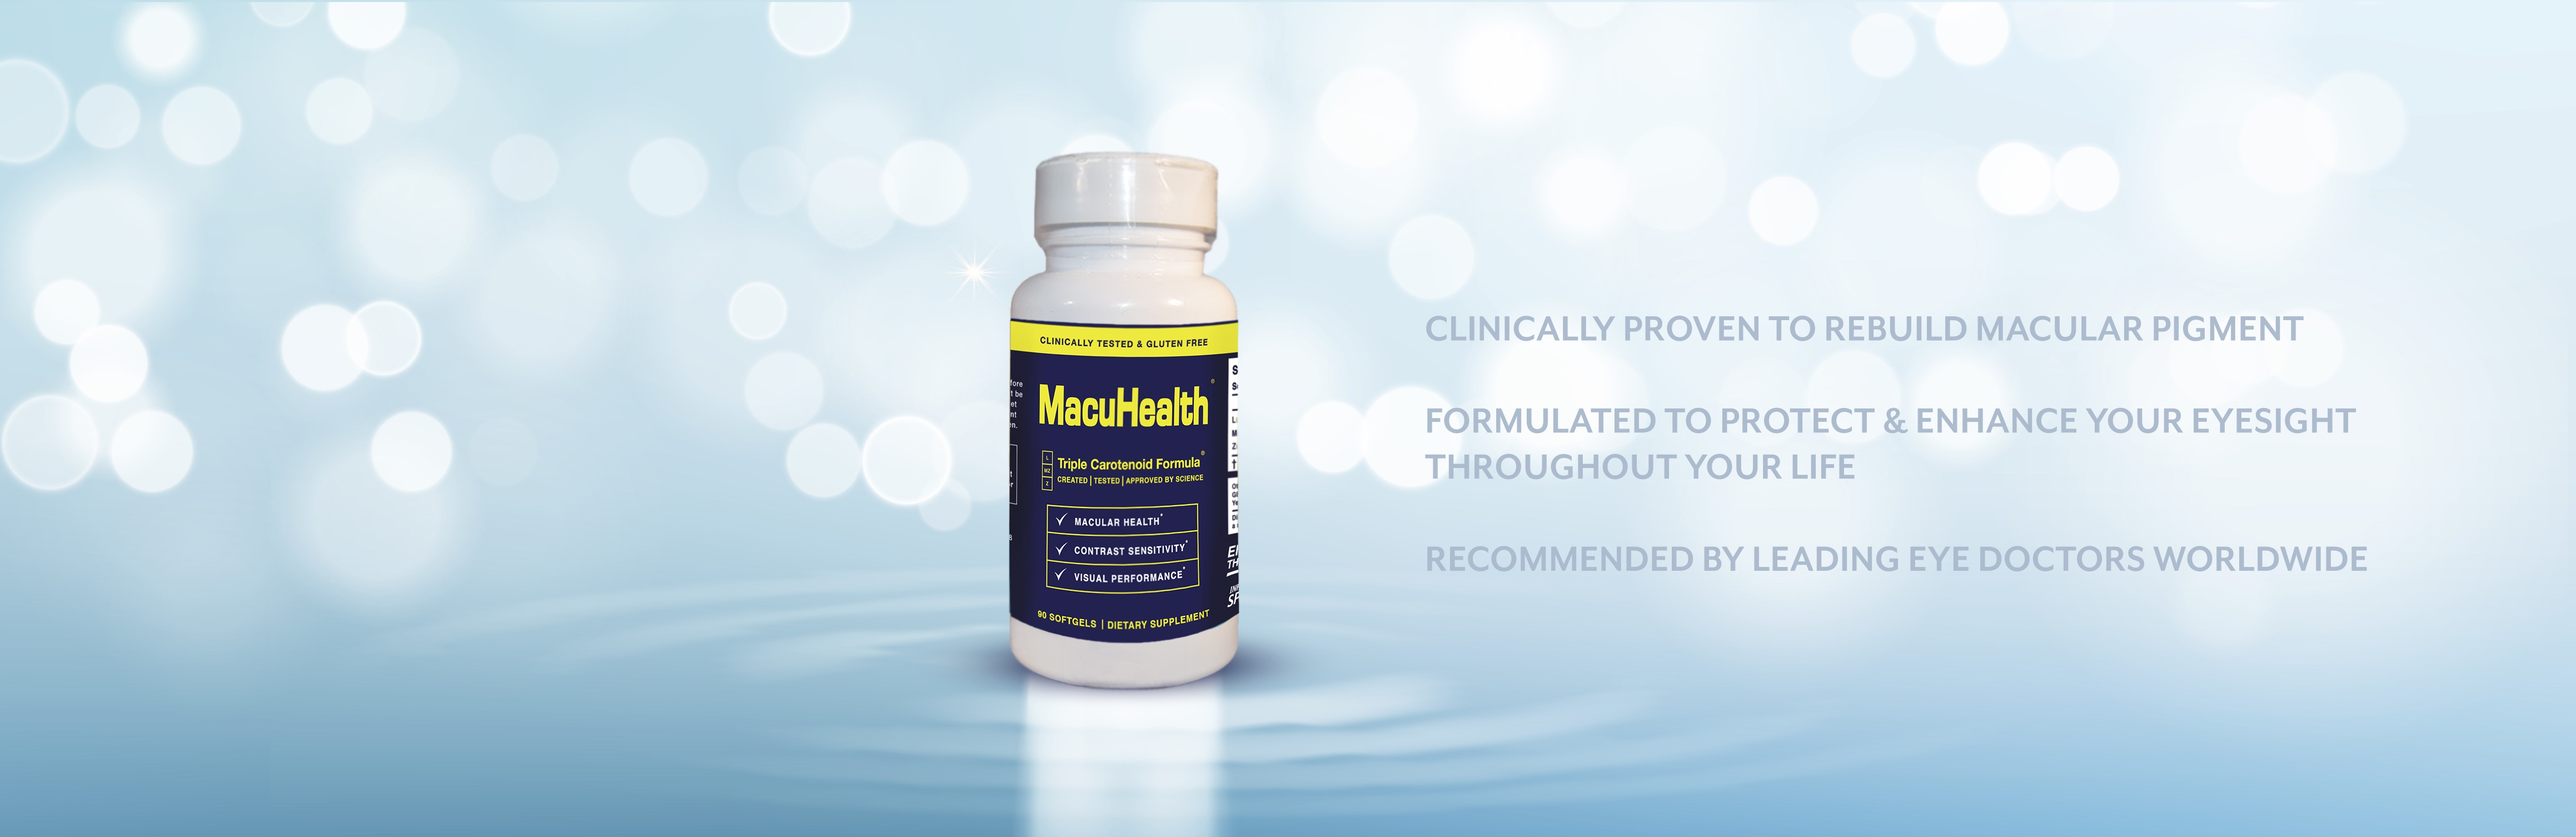 MacuHealth | Supplements for Macular Degeneration